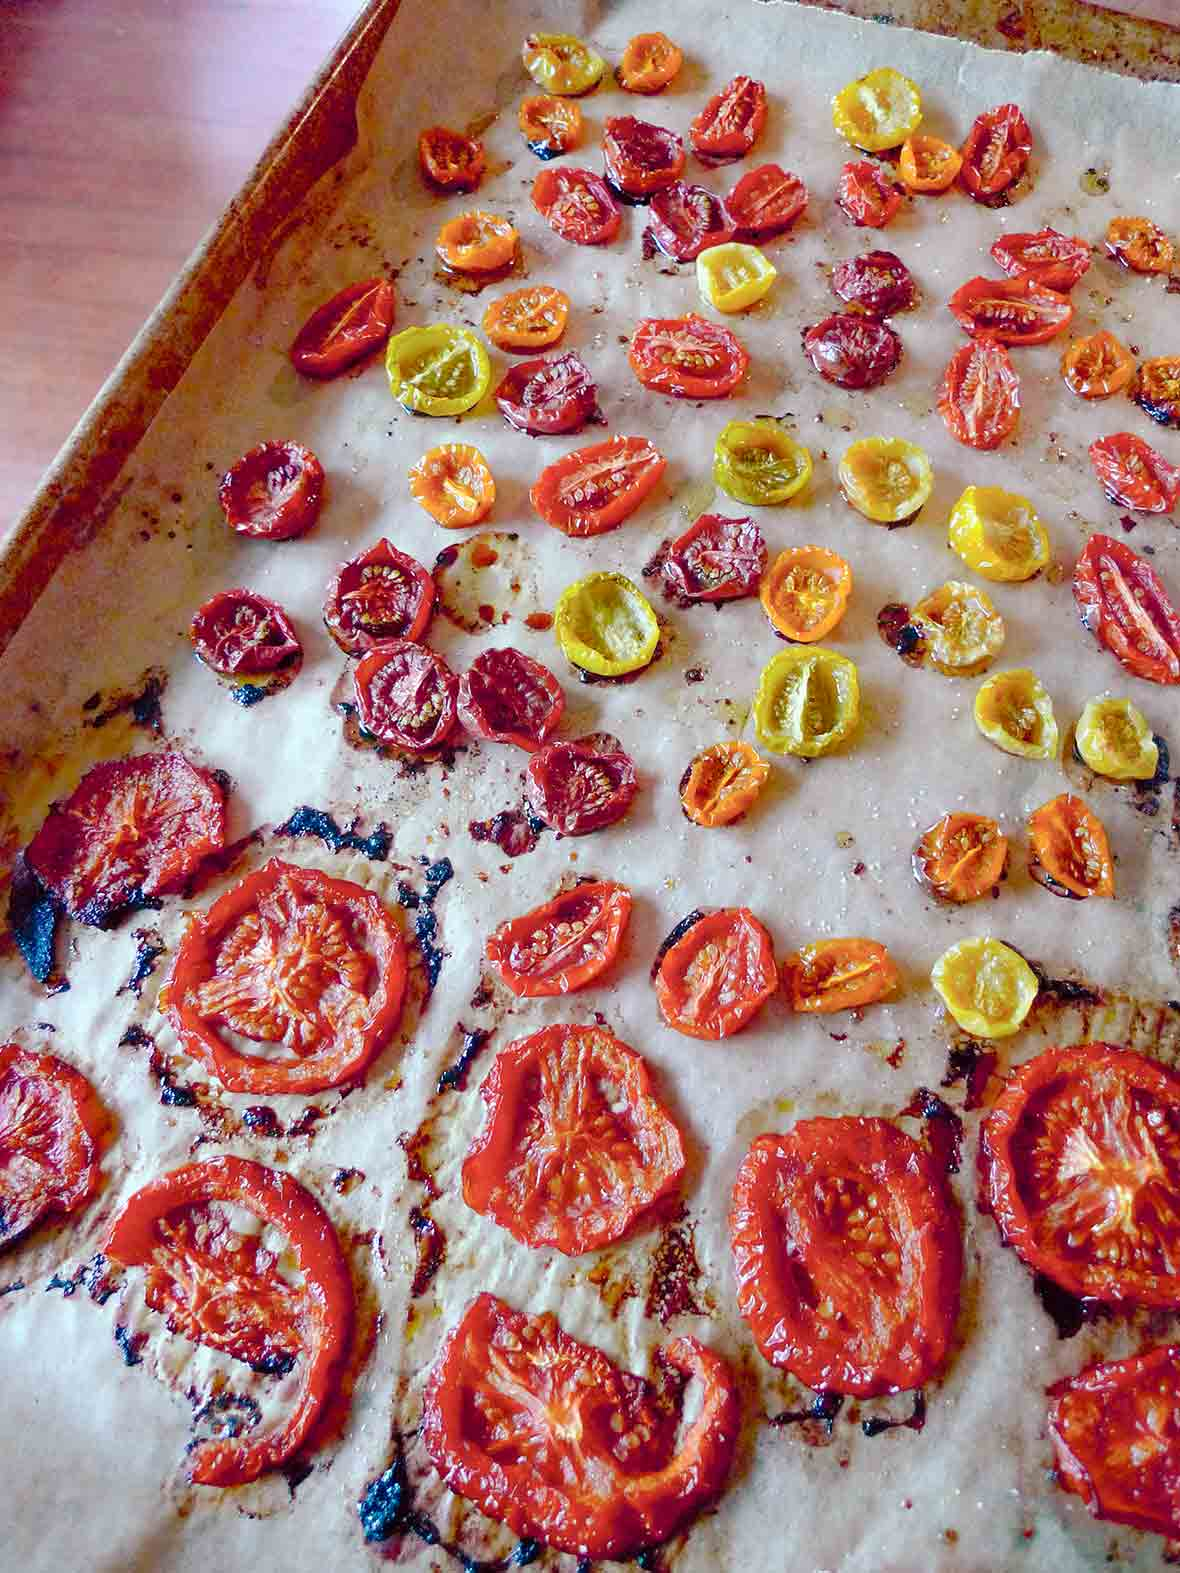 A rimmed baking sheet filled with assorted oven-roasted tomatoes.